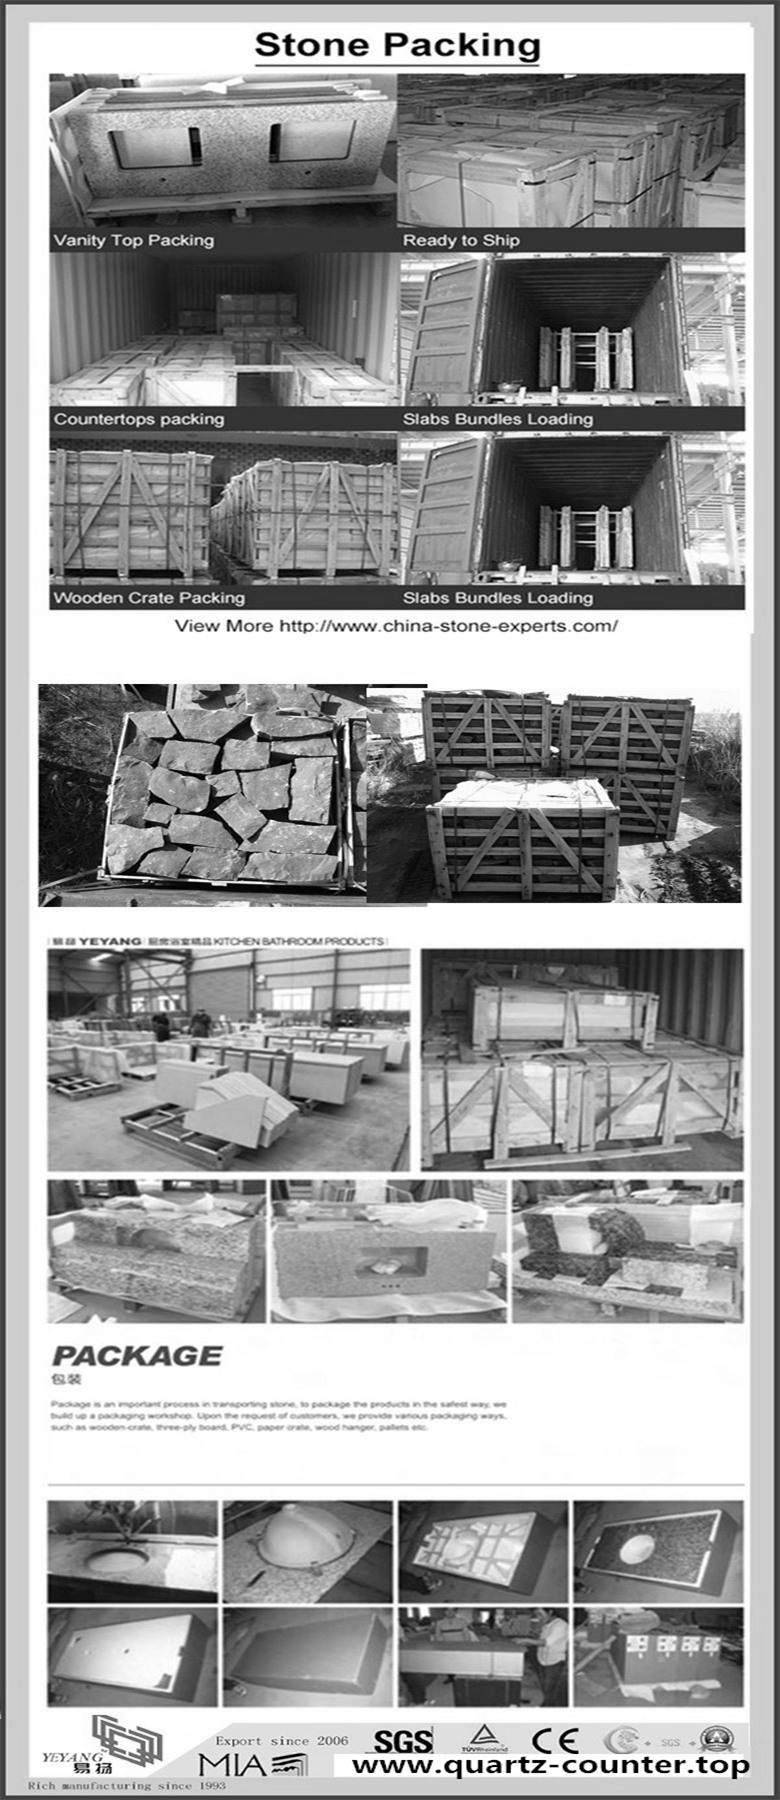 quartz stone packing